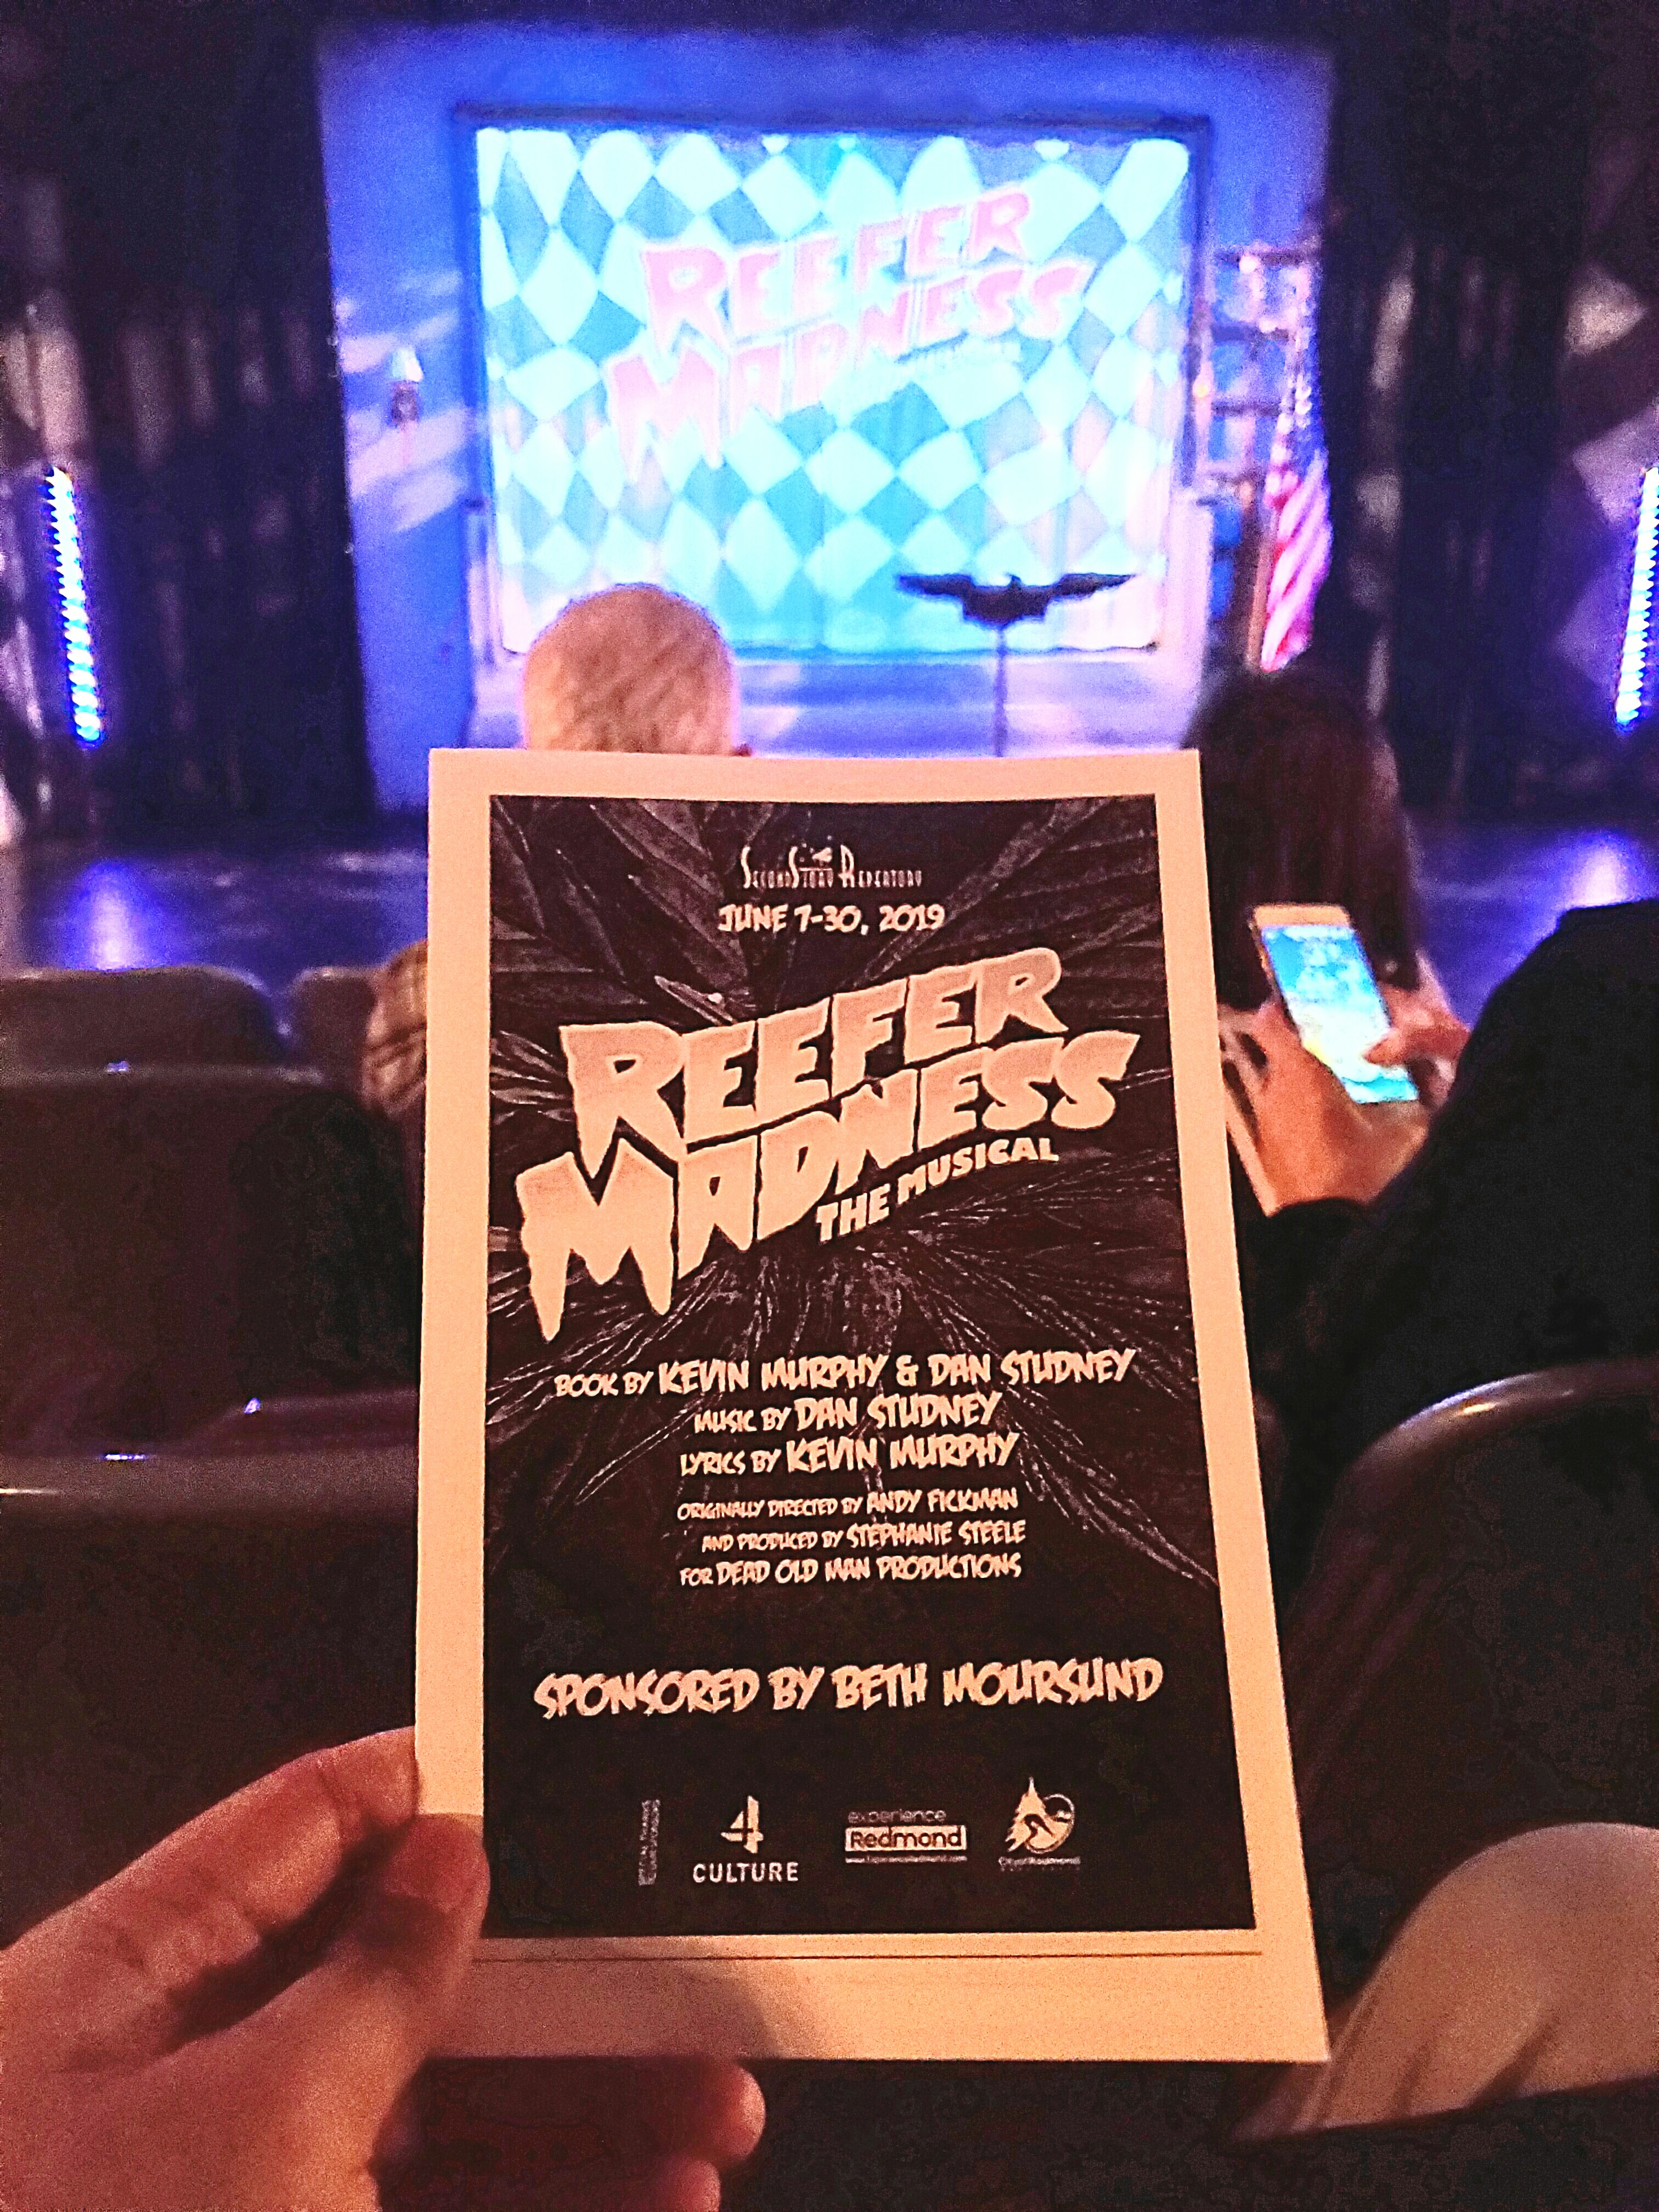 Watched Reefer Madness: The Musical. Blown away by the talent of these community performers (and I've seen a professional production of this #musical). Most everybody looked so fit when scantily clad! One of the best SecondStory Repertory shows I've seen. #marijuana #weed #reefer #MaryJane